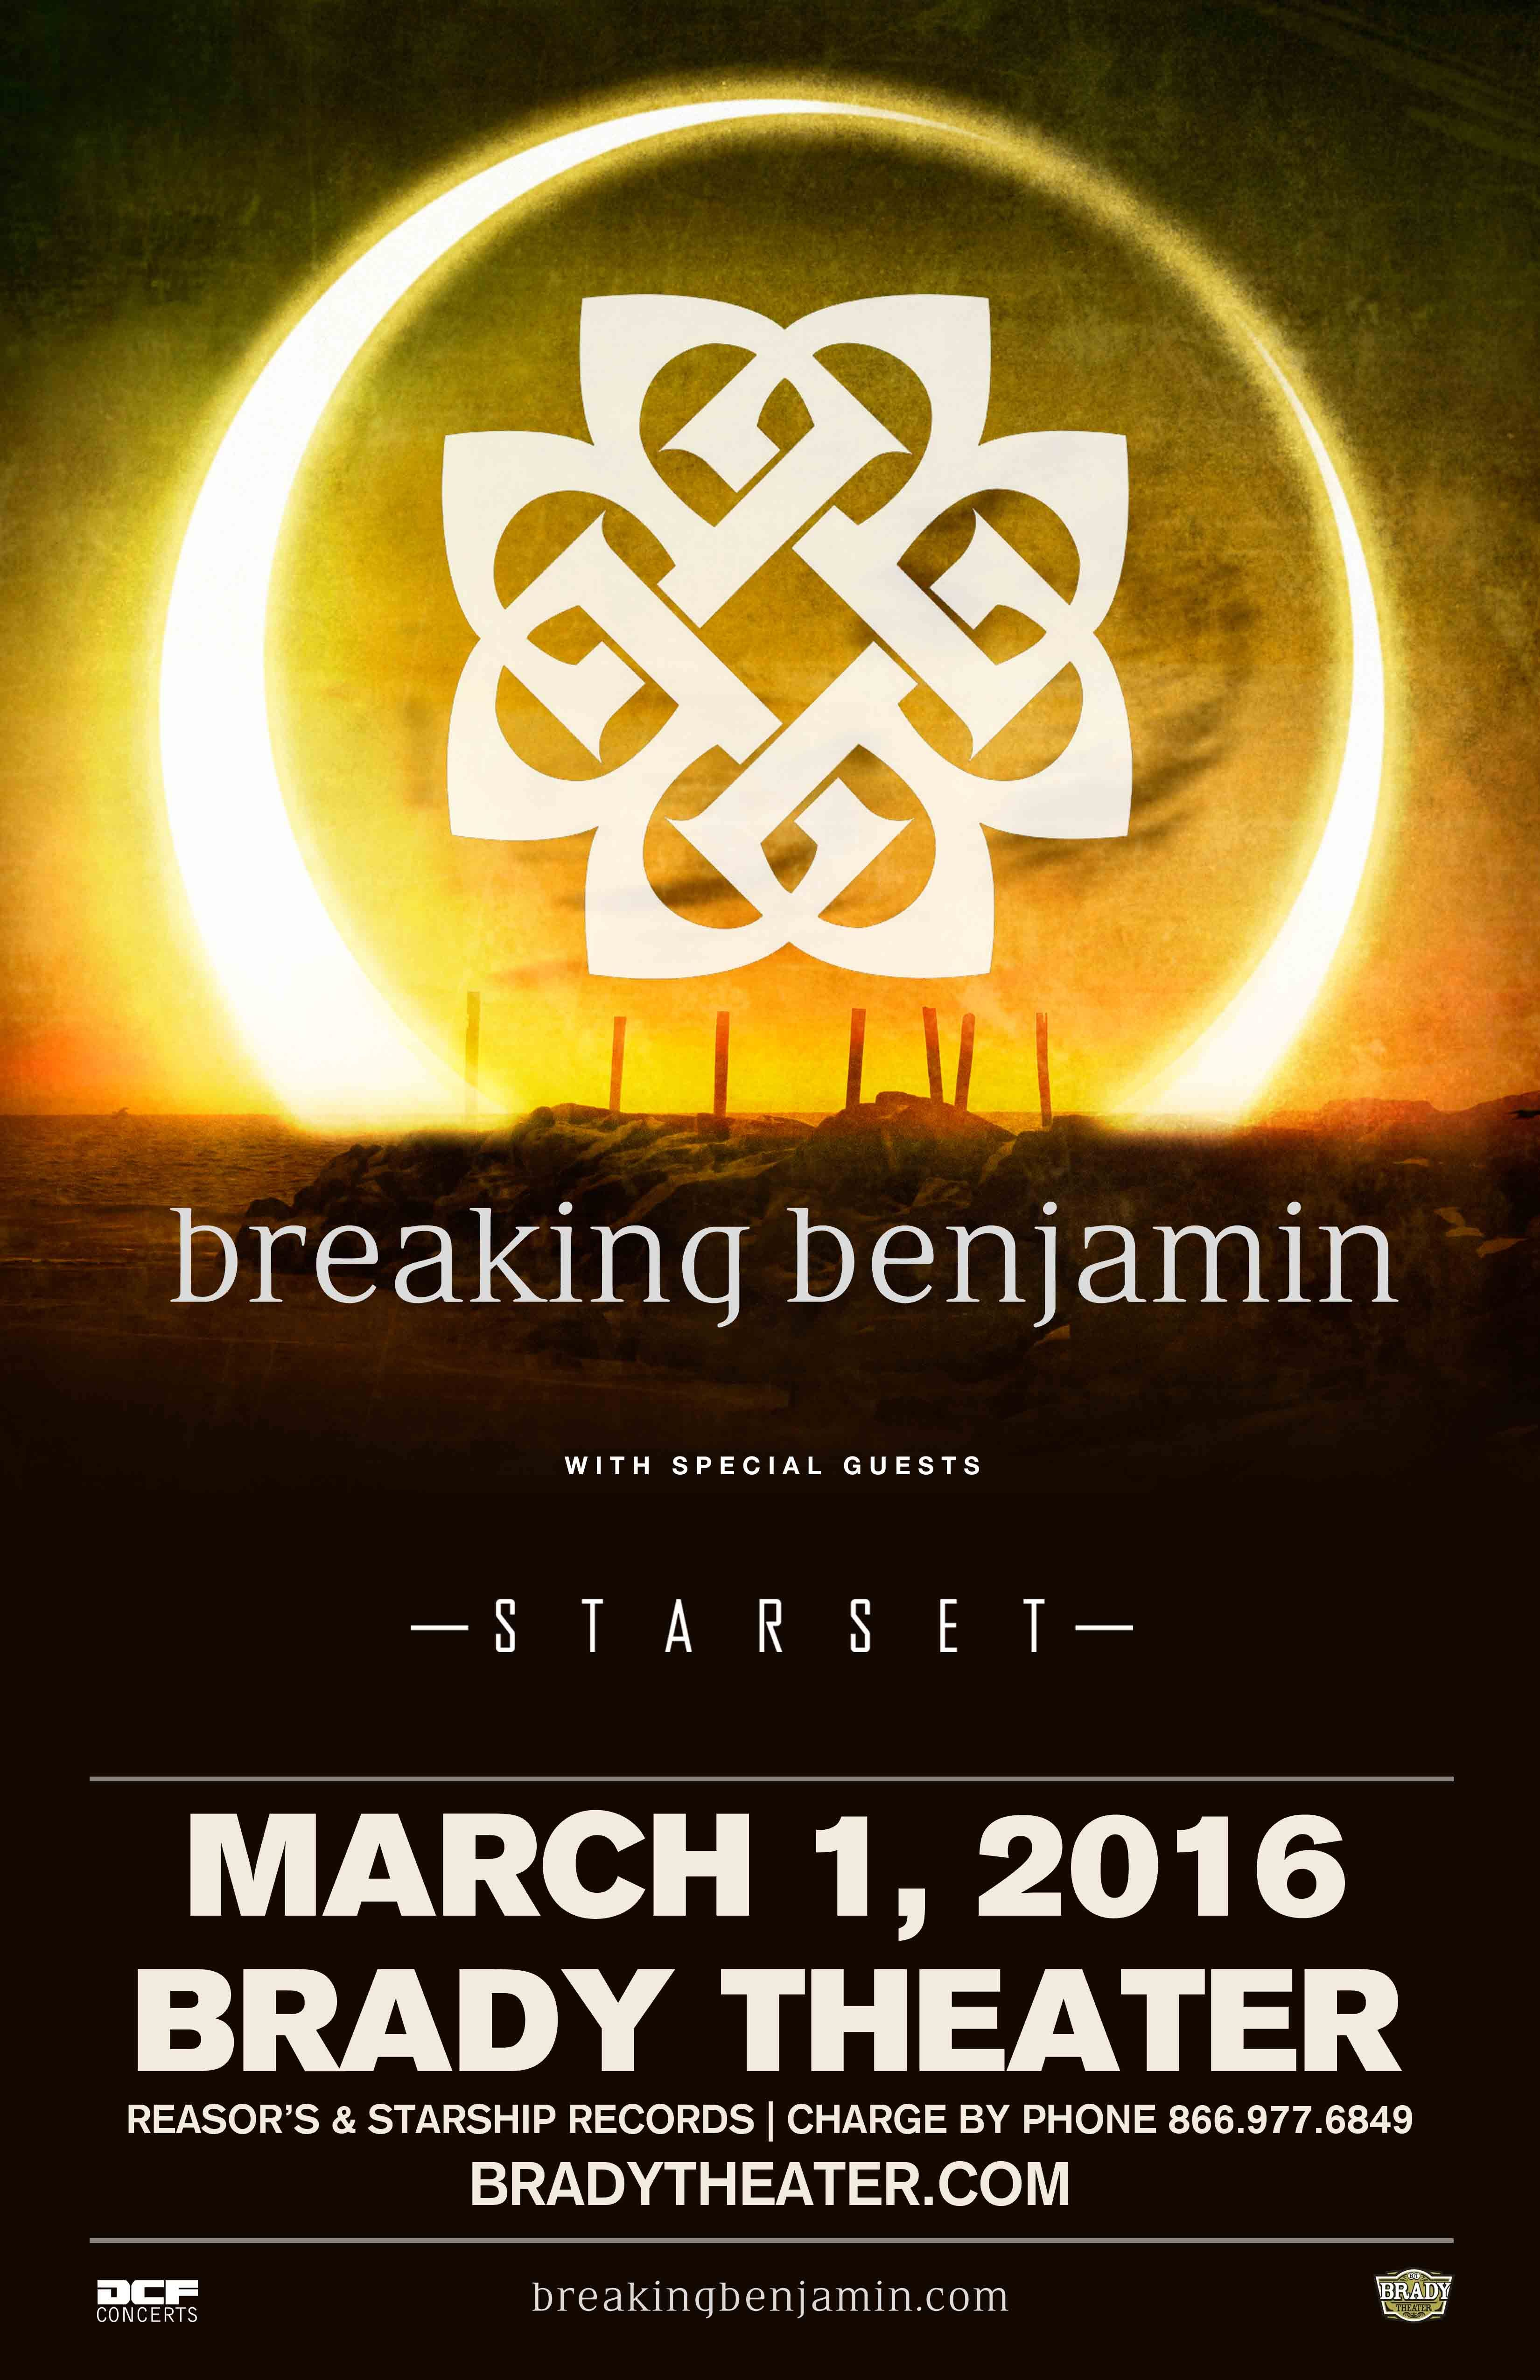 Breaking Benjamin Tue Mar 1 Brady Theater 105 W Brady St Tulsa Ok With Special Guest Starset Tickets On Sale Fri 12 4 At 10am Reasor S And Starship Re